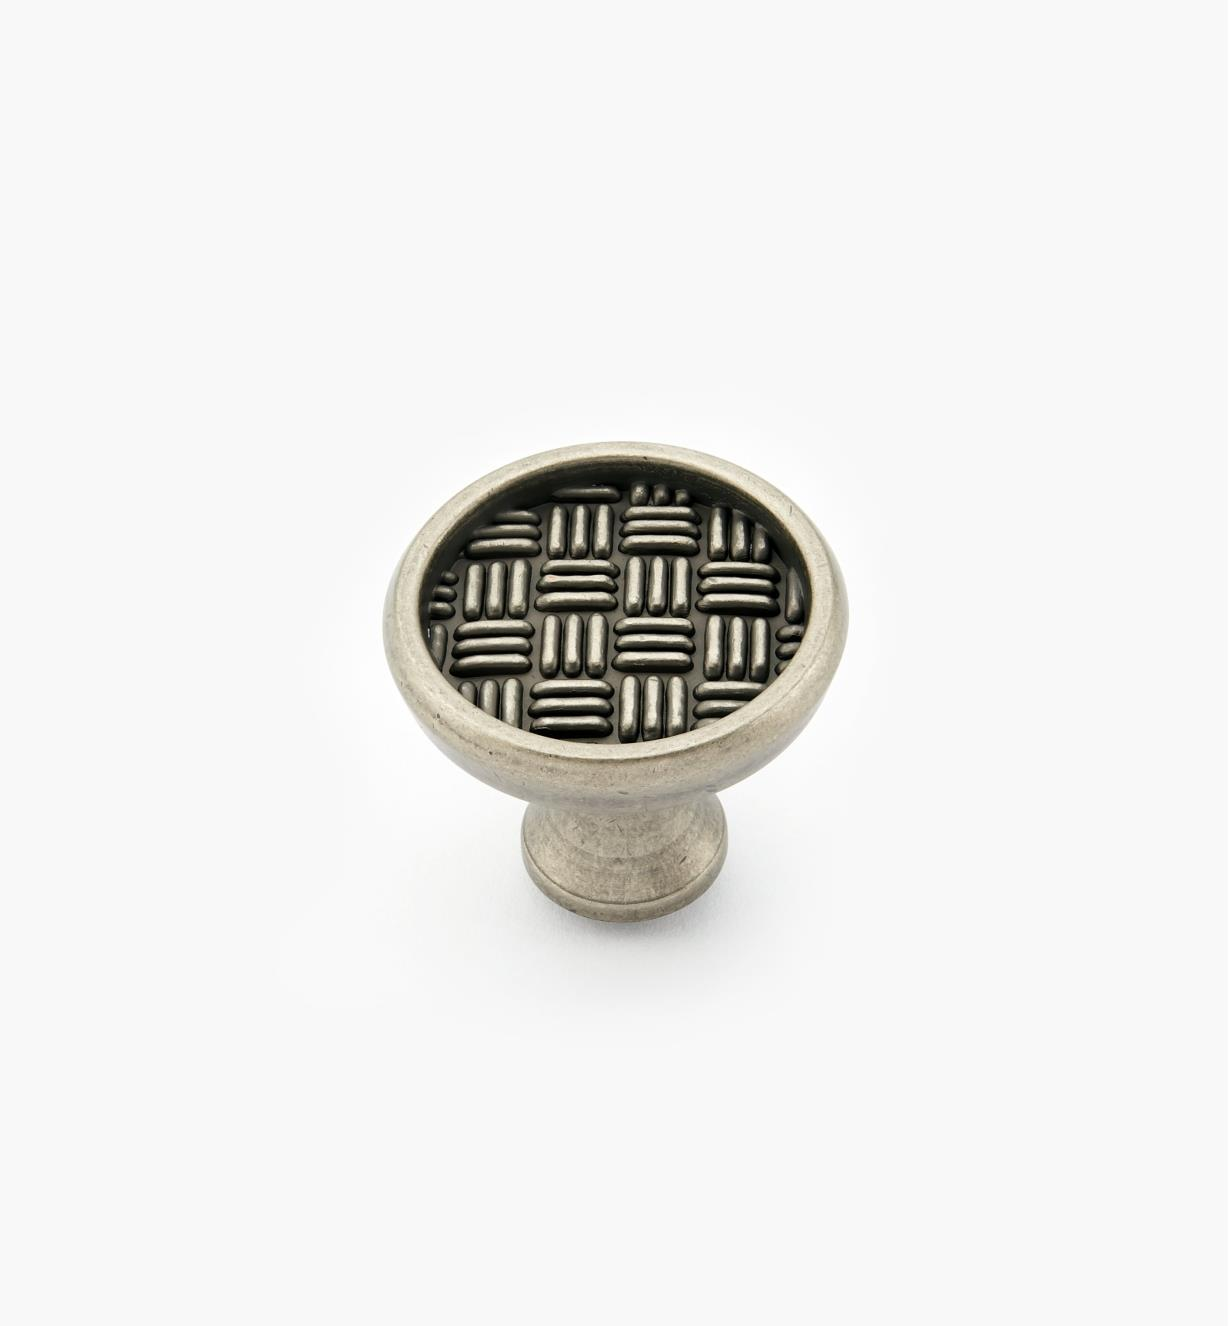 02A4135 - Patterns II Weathered Nickel Round Knob